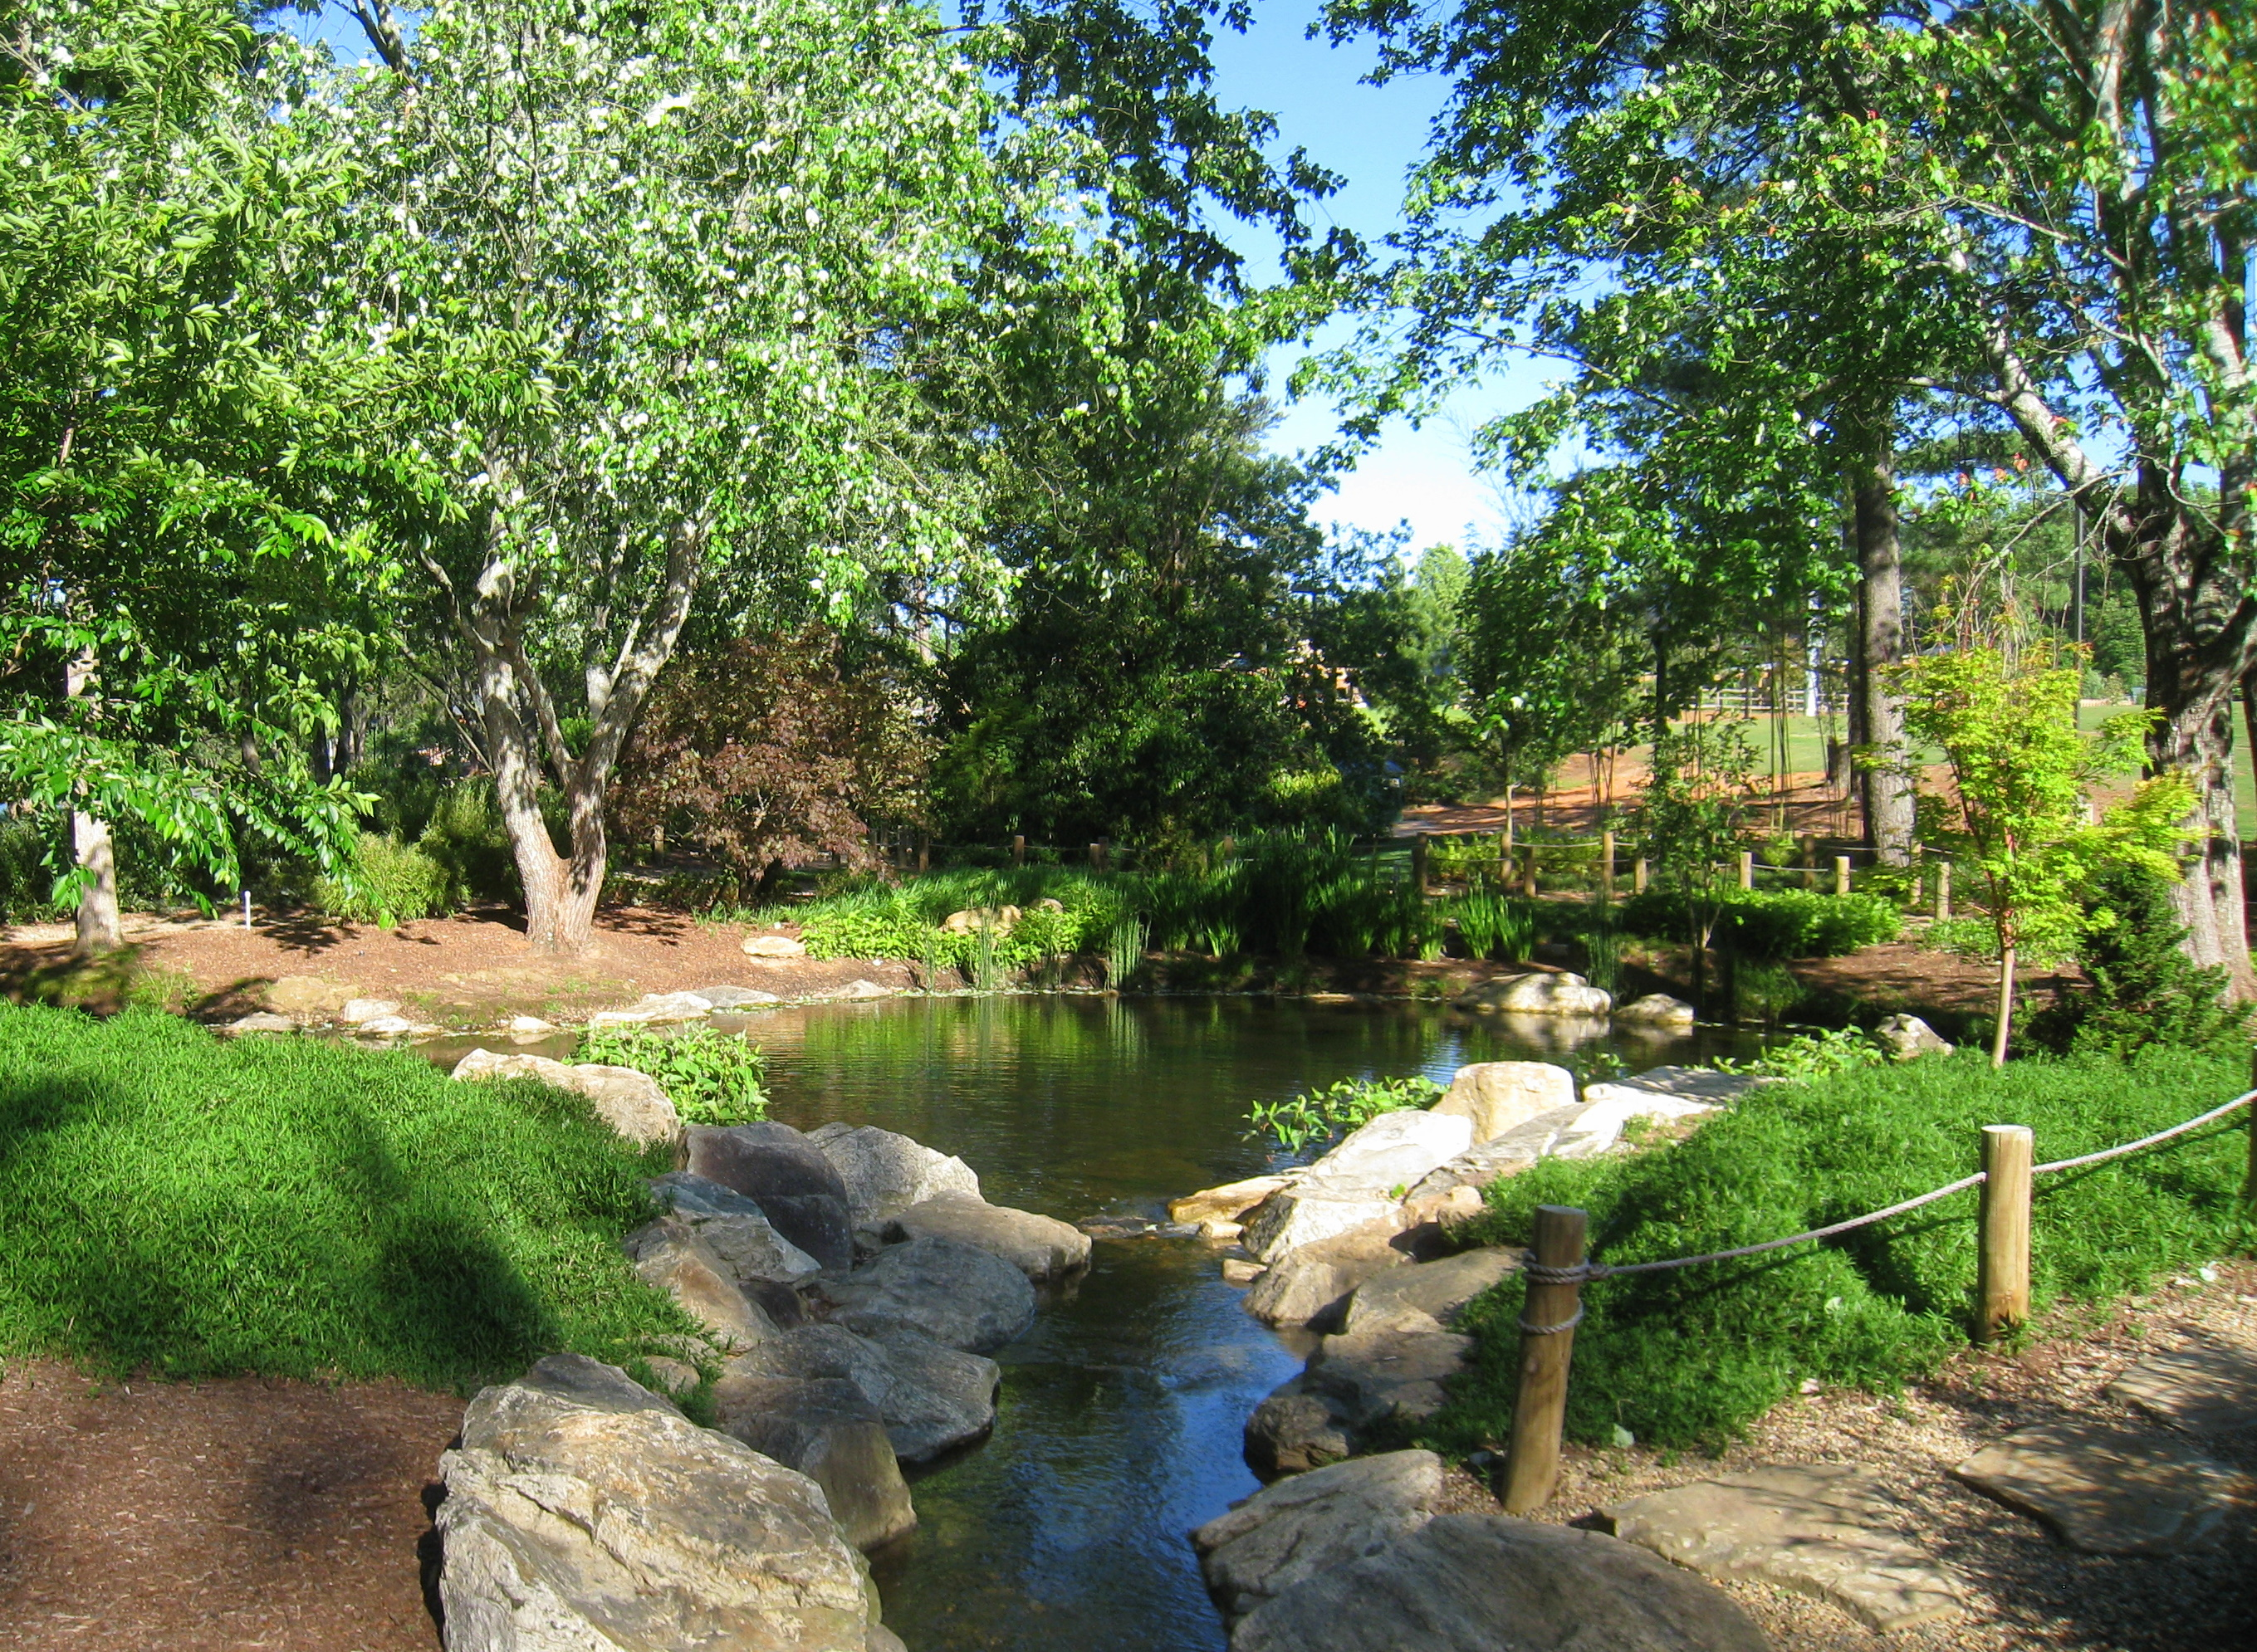 File:Furman University Japanese Garden - pool 1.JPG - Wikimedia ...